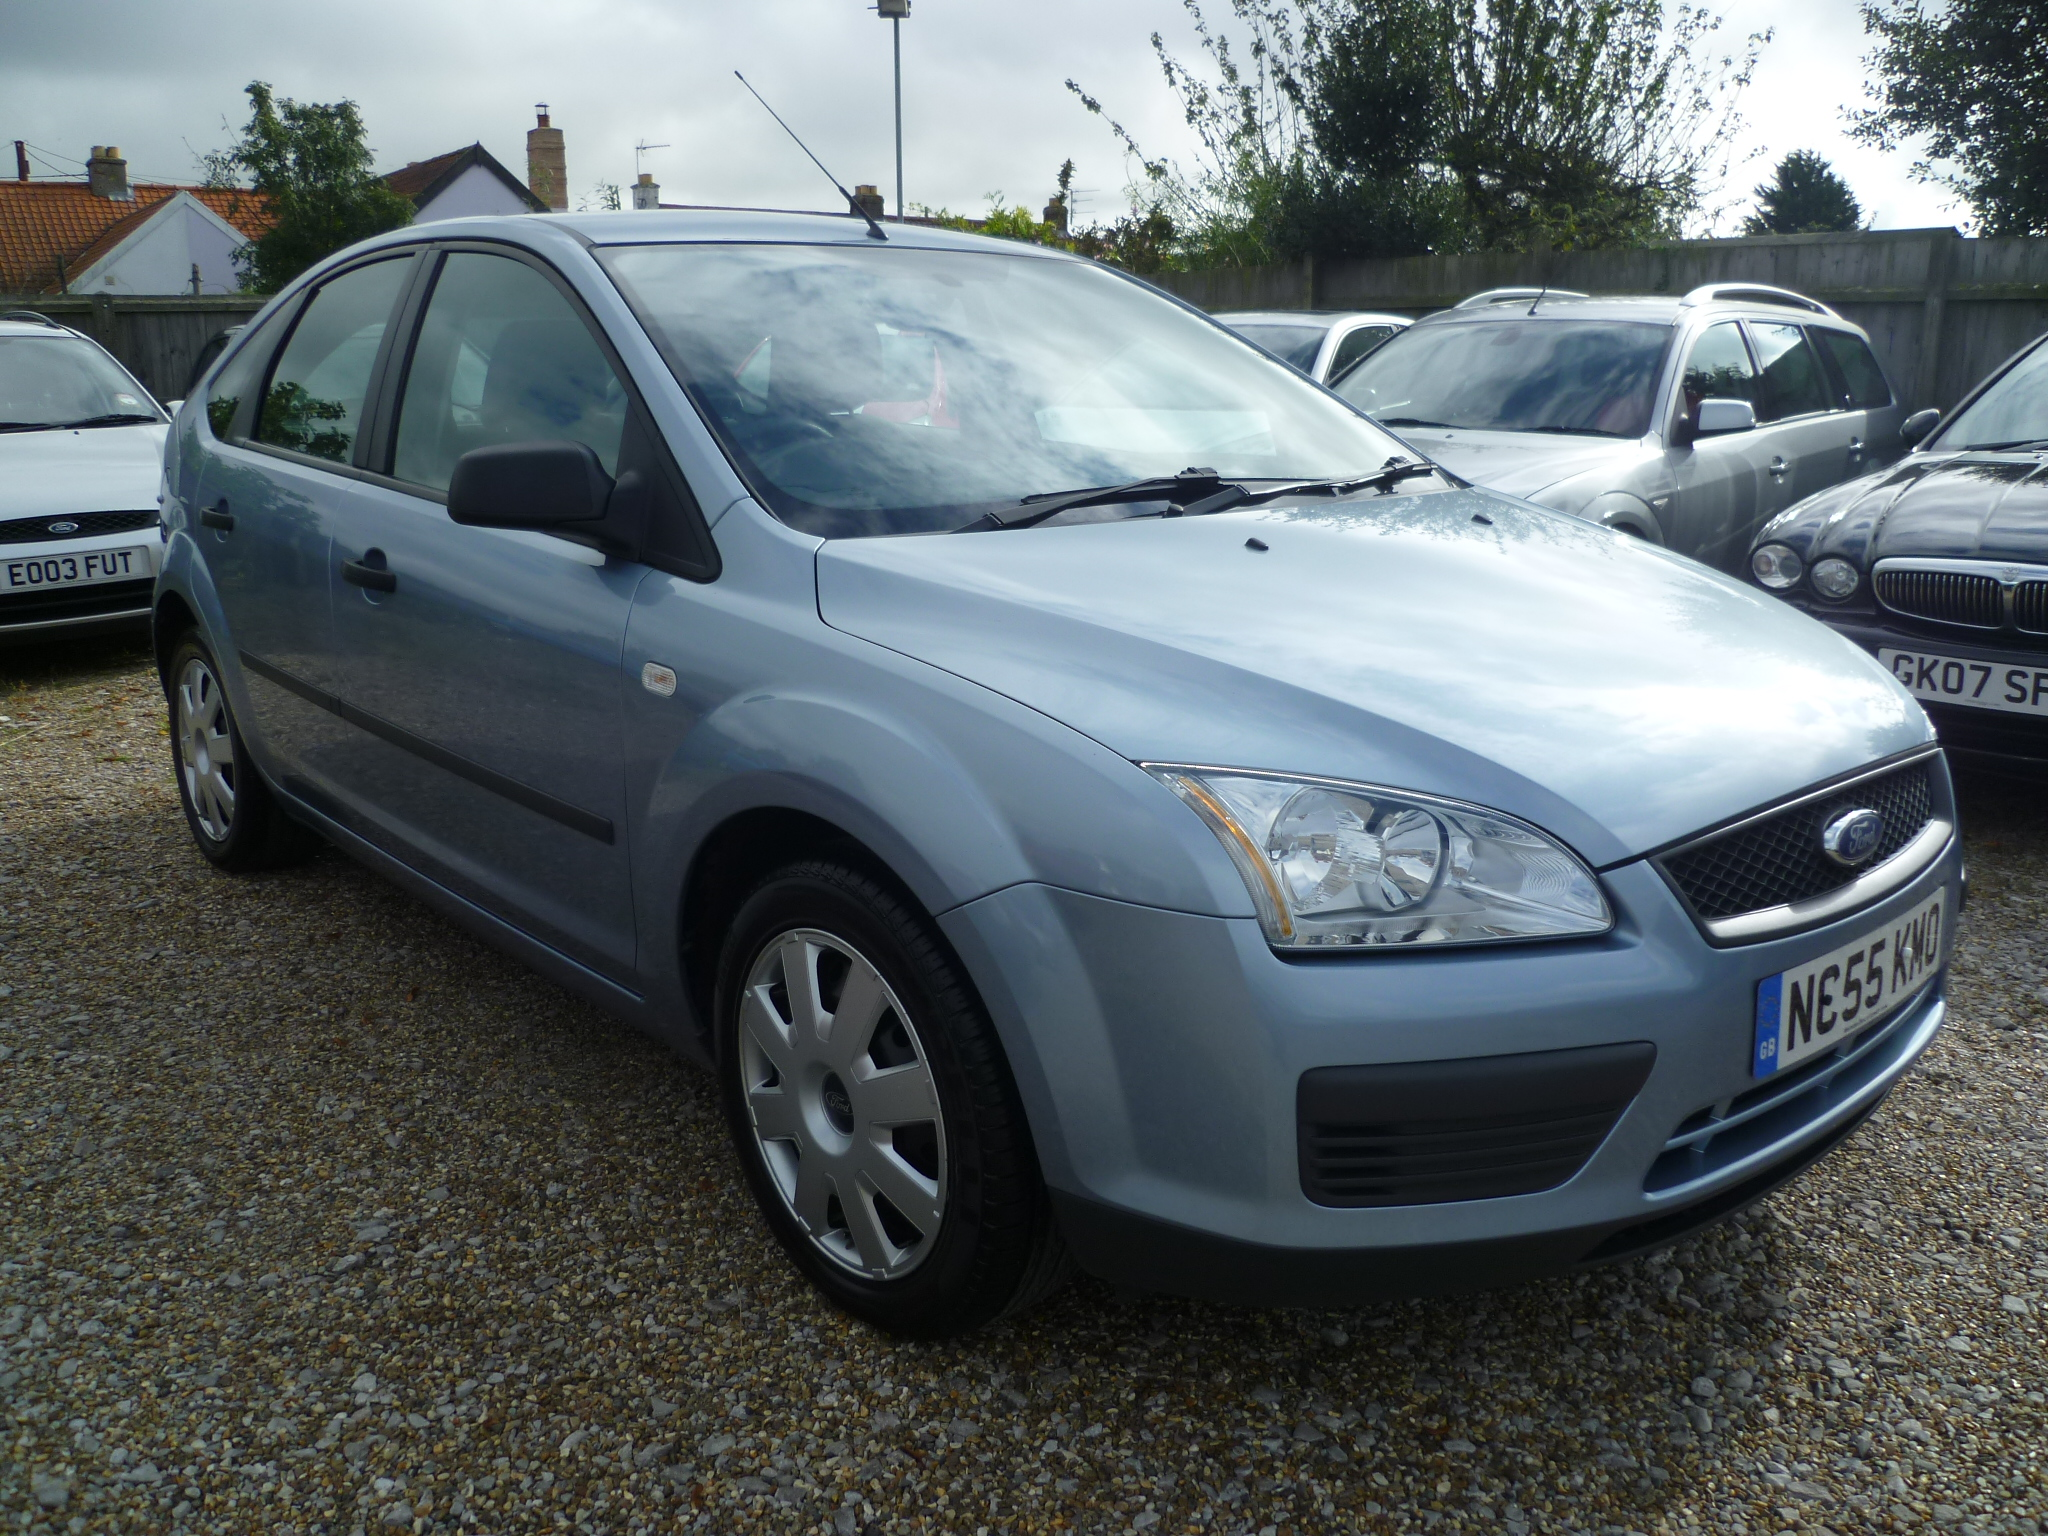 Ford Focus 1.6 LX 5Dr Automatic